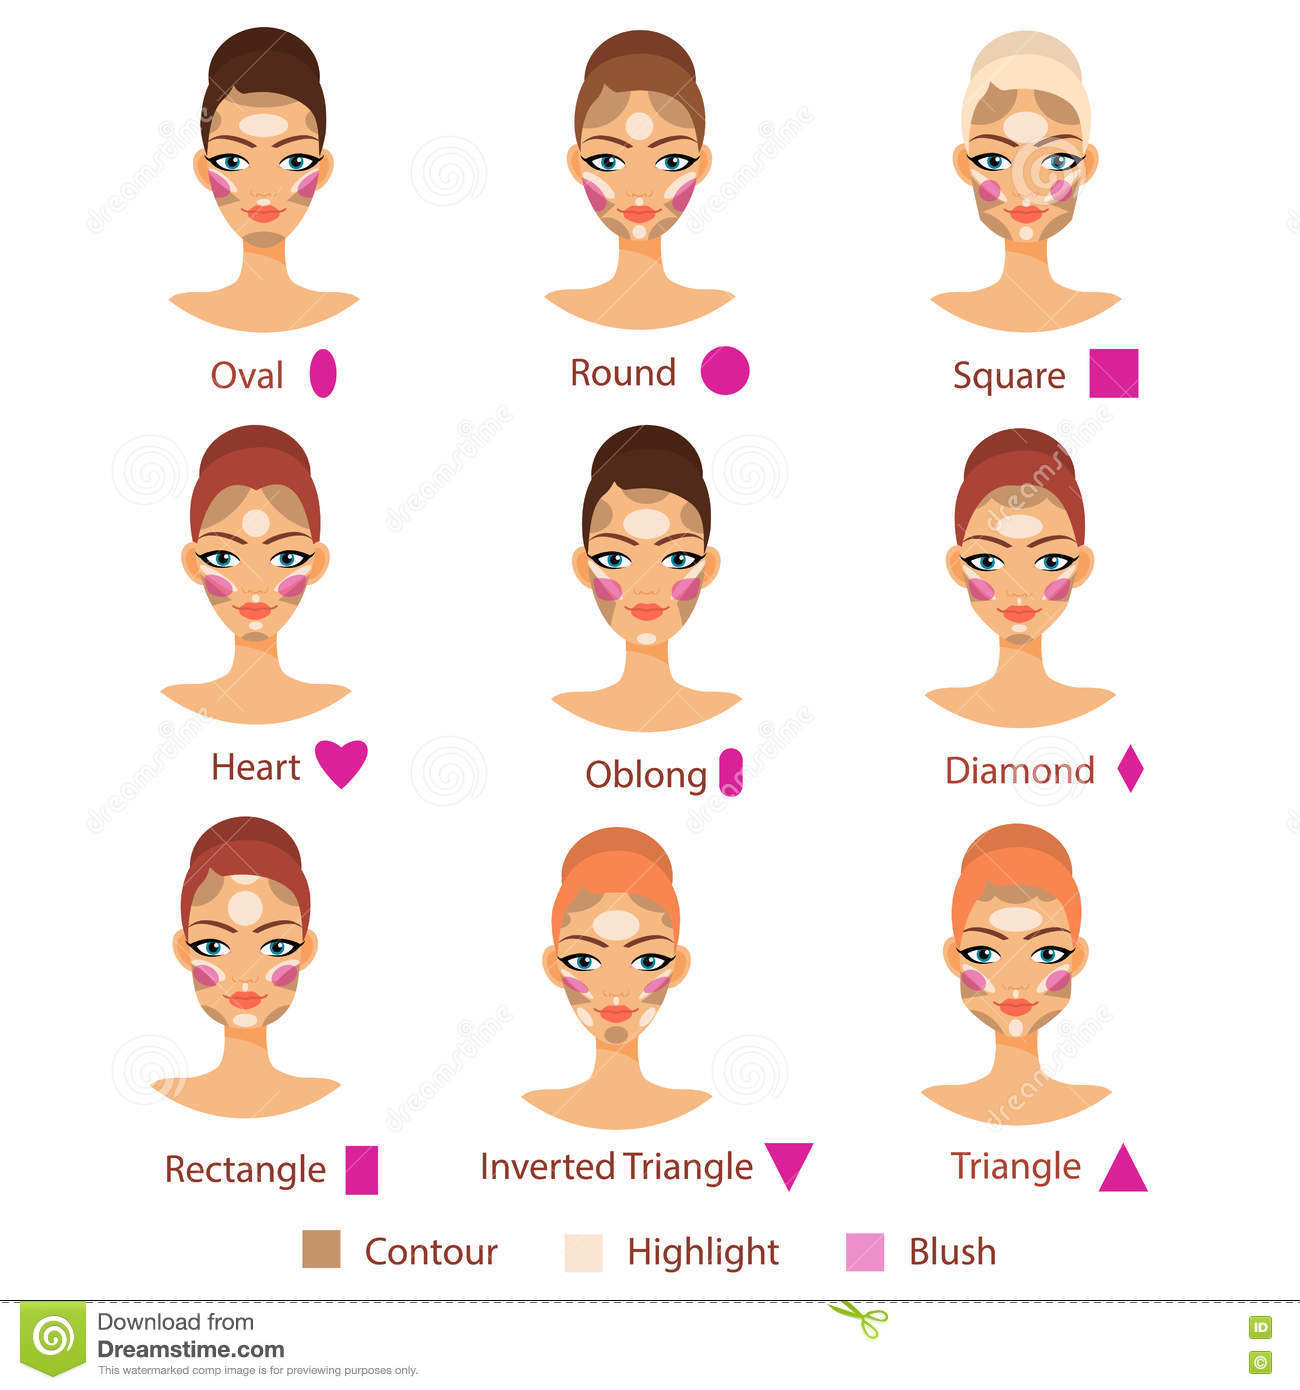 Highlight Contour And Blush For Different Female Face